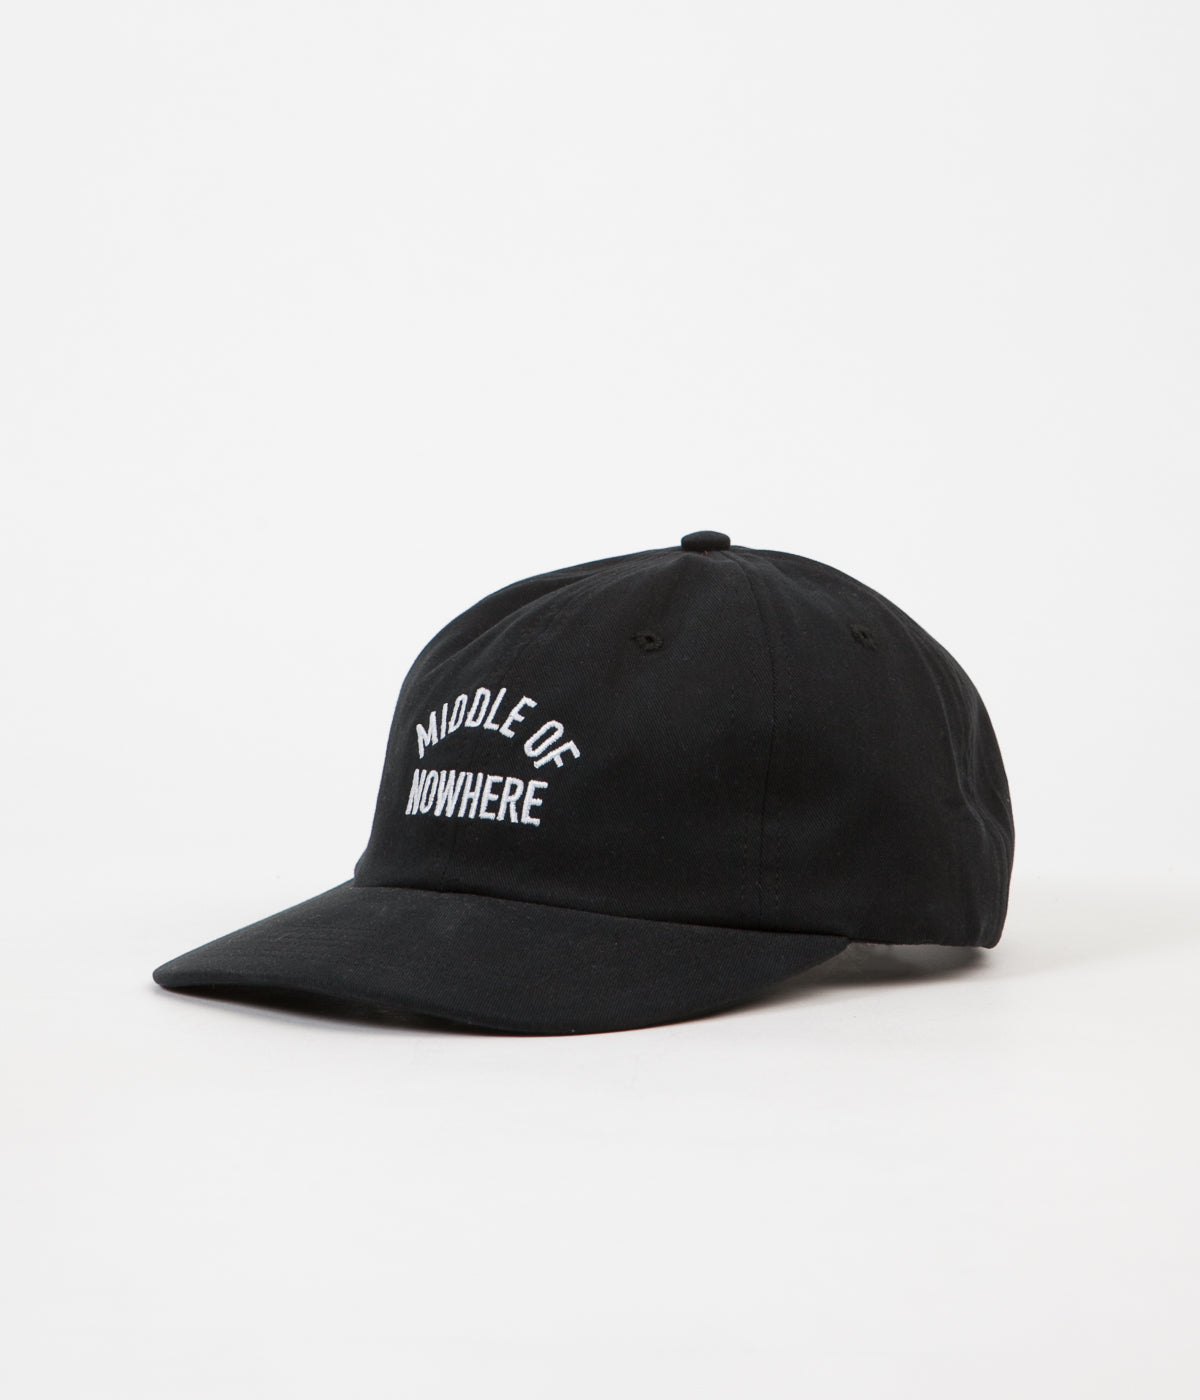 The Quiet Life Middle Of Nowhere Polo Cap - Black